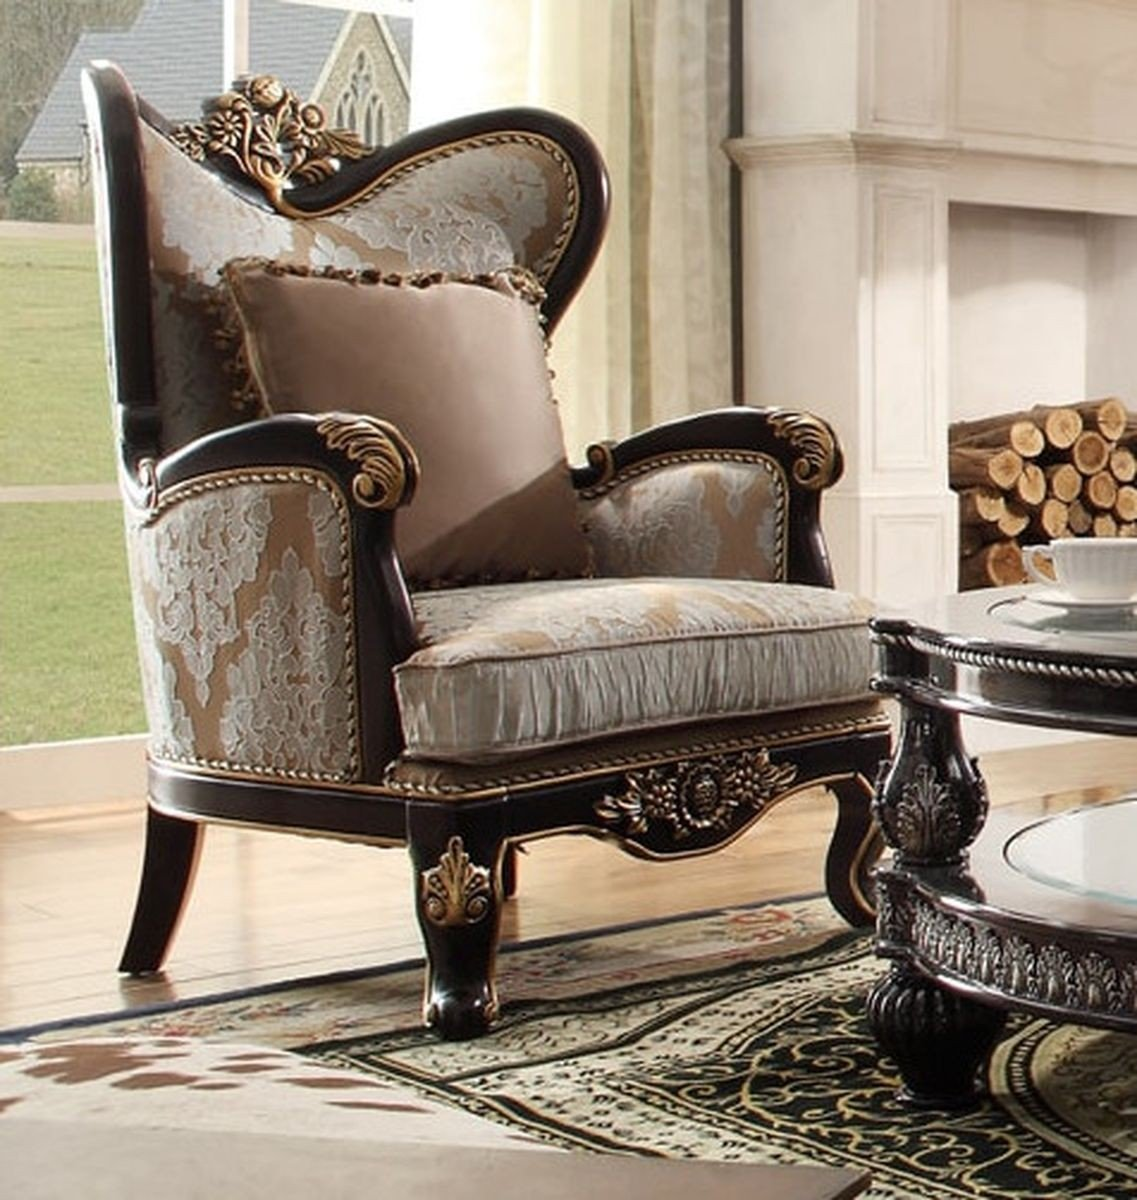 Traditional Victorian Luxury HD-551 Gilded Chair in Brown by Homey Design